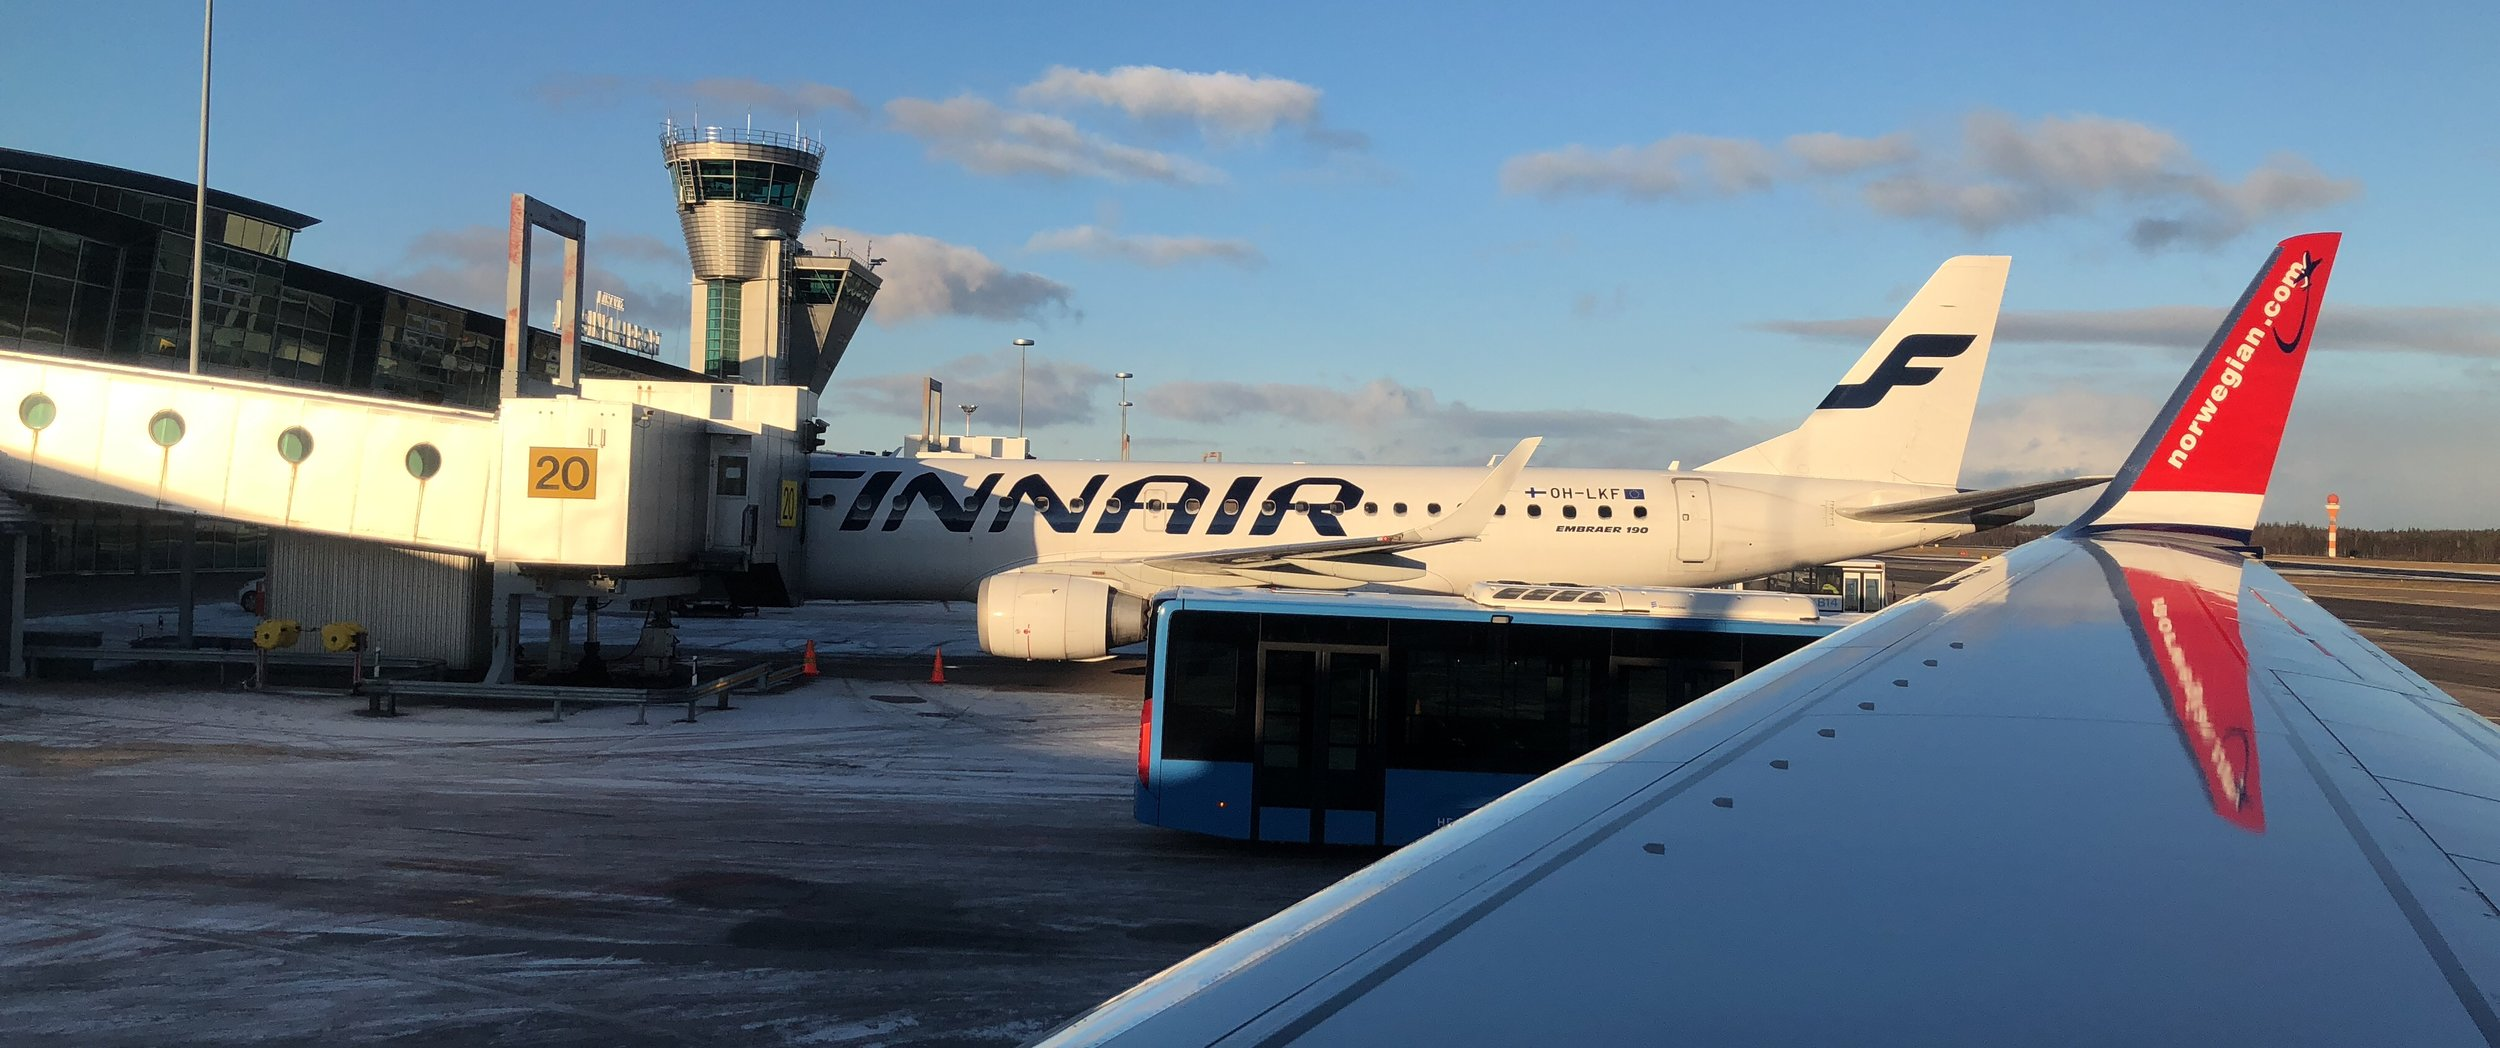 Finnair and Norwegian Air have cheap flights to Lapland from cities nearby.